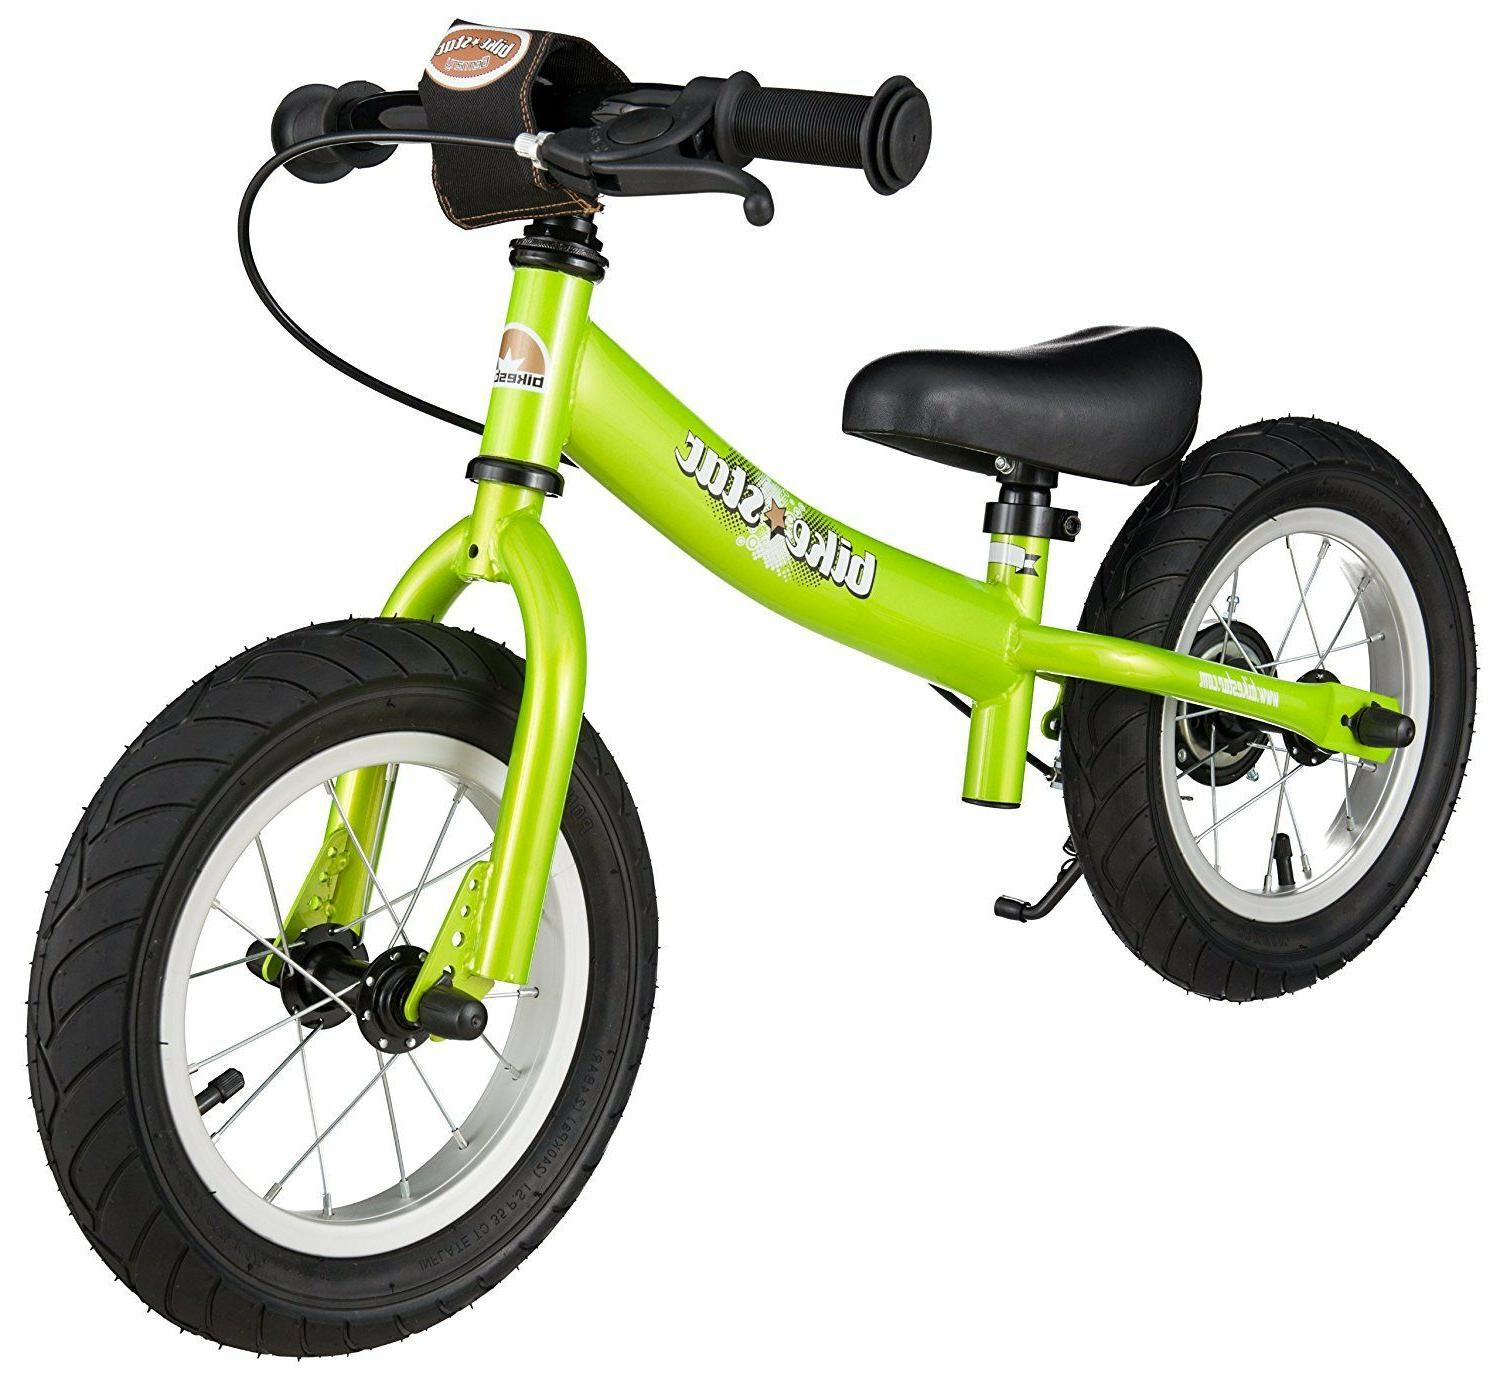 BIKESTAR® Lightweight Kids Sport Balance Bike w/ Breaks 12